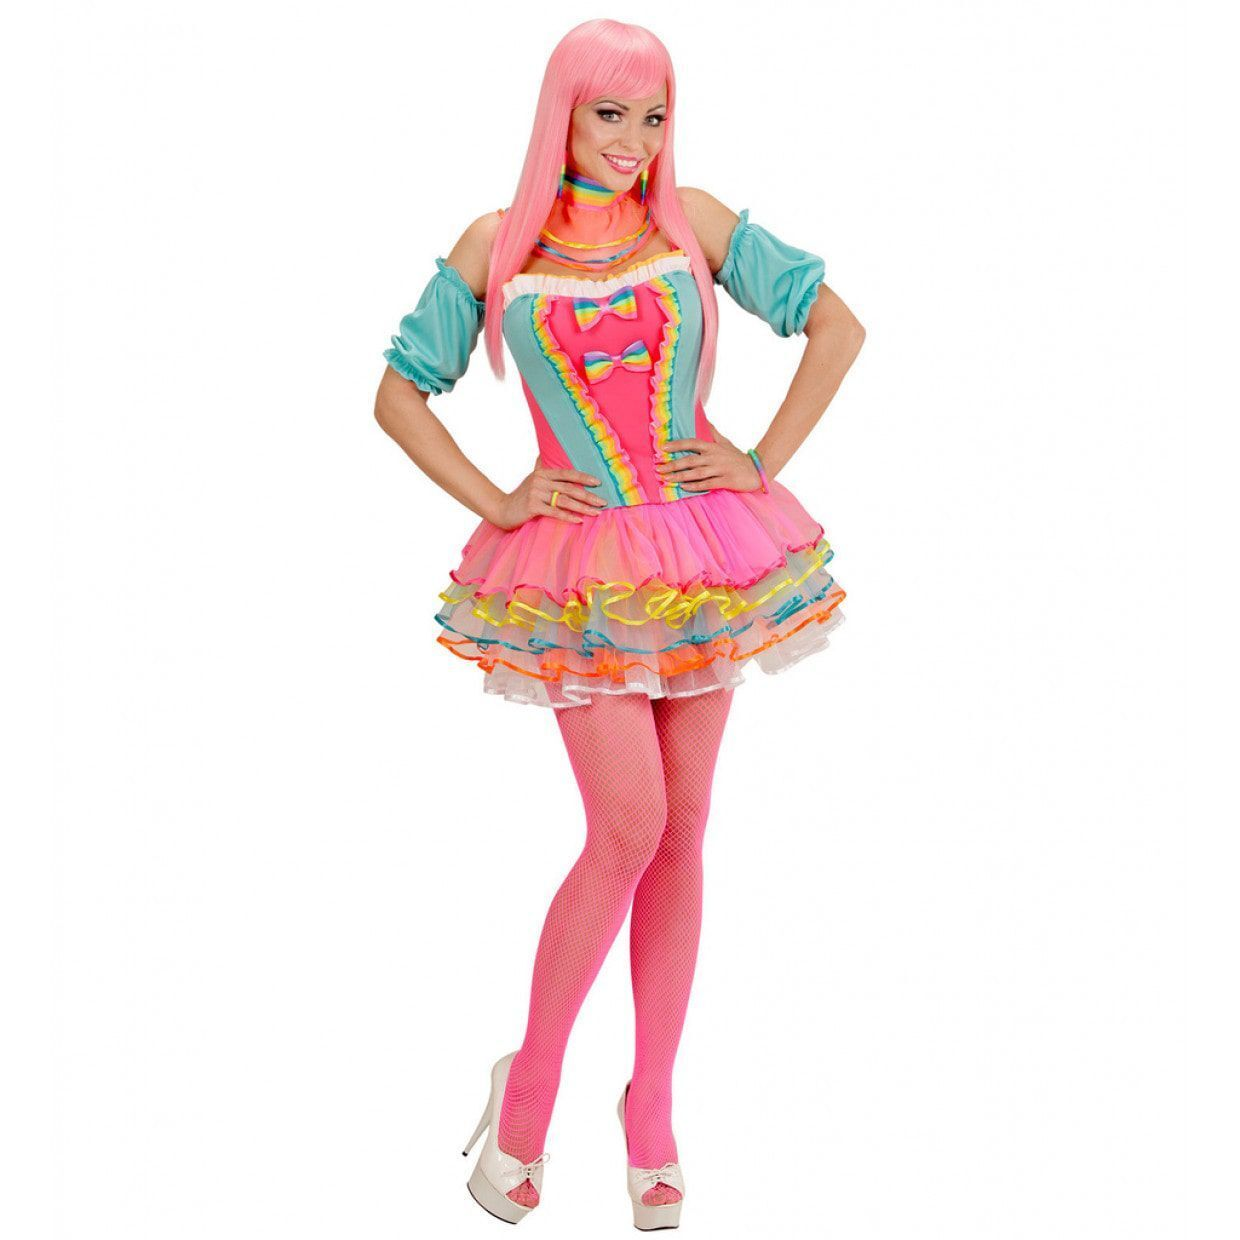 Candy fantasie dames outfit rainbow